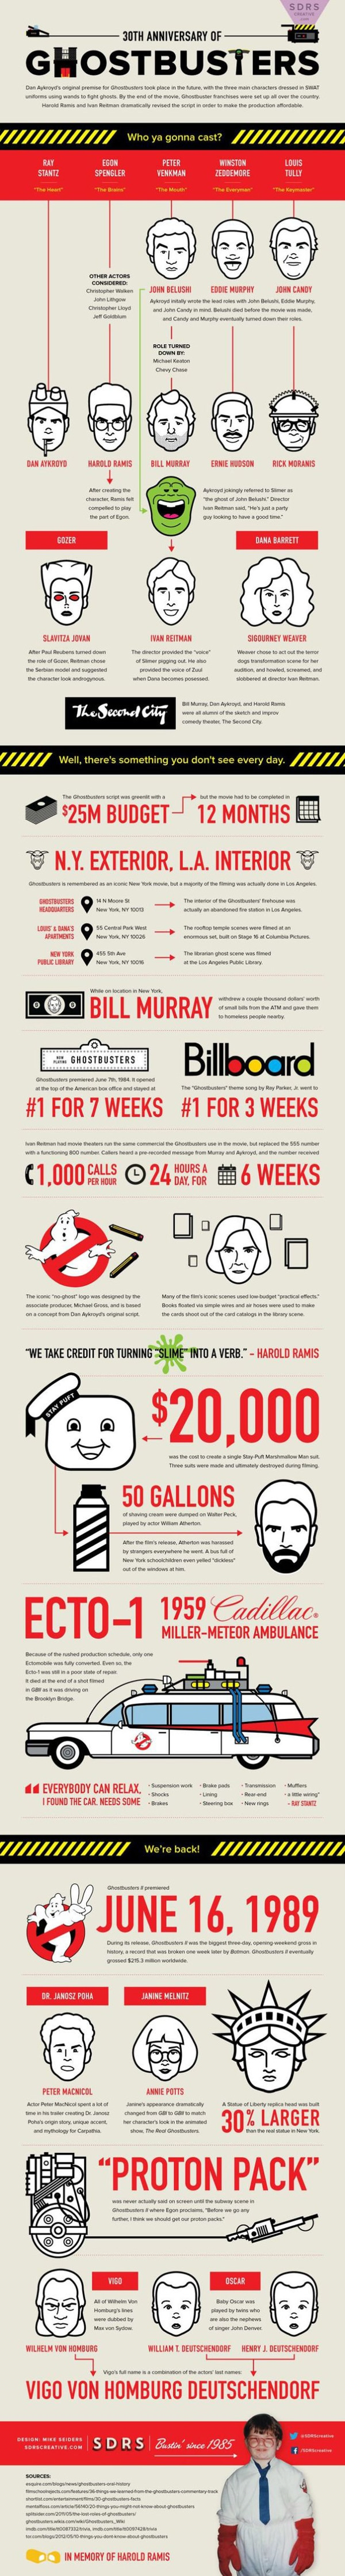 ghostbusters infographic1 - Ghostbusters News Bites: 30th Anniversary Infographic and Ernie Hudson Talks Ghostbusters 3